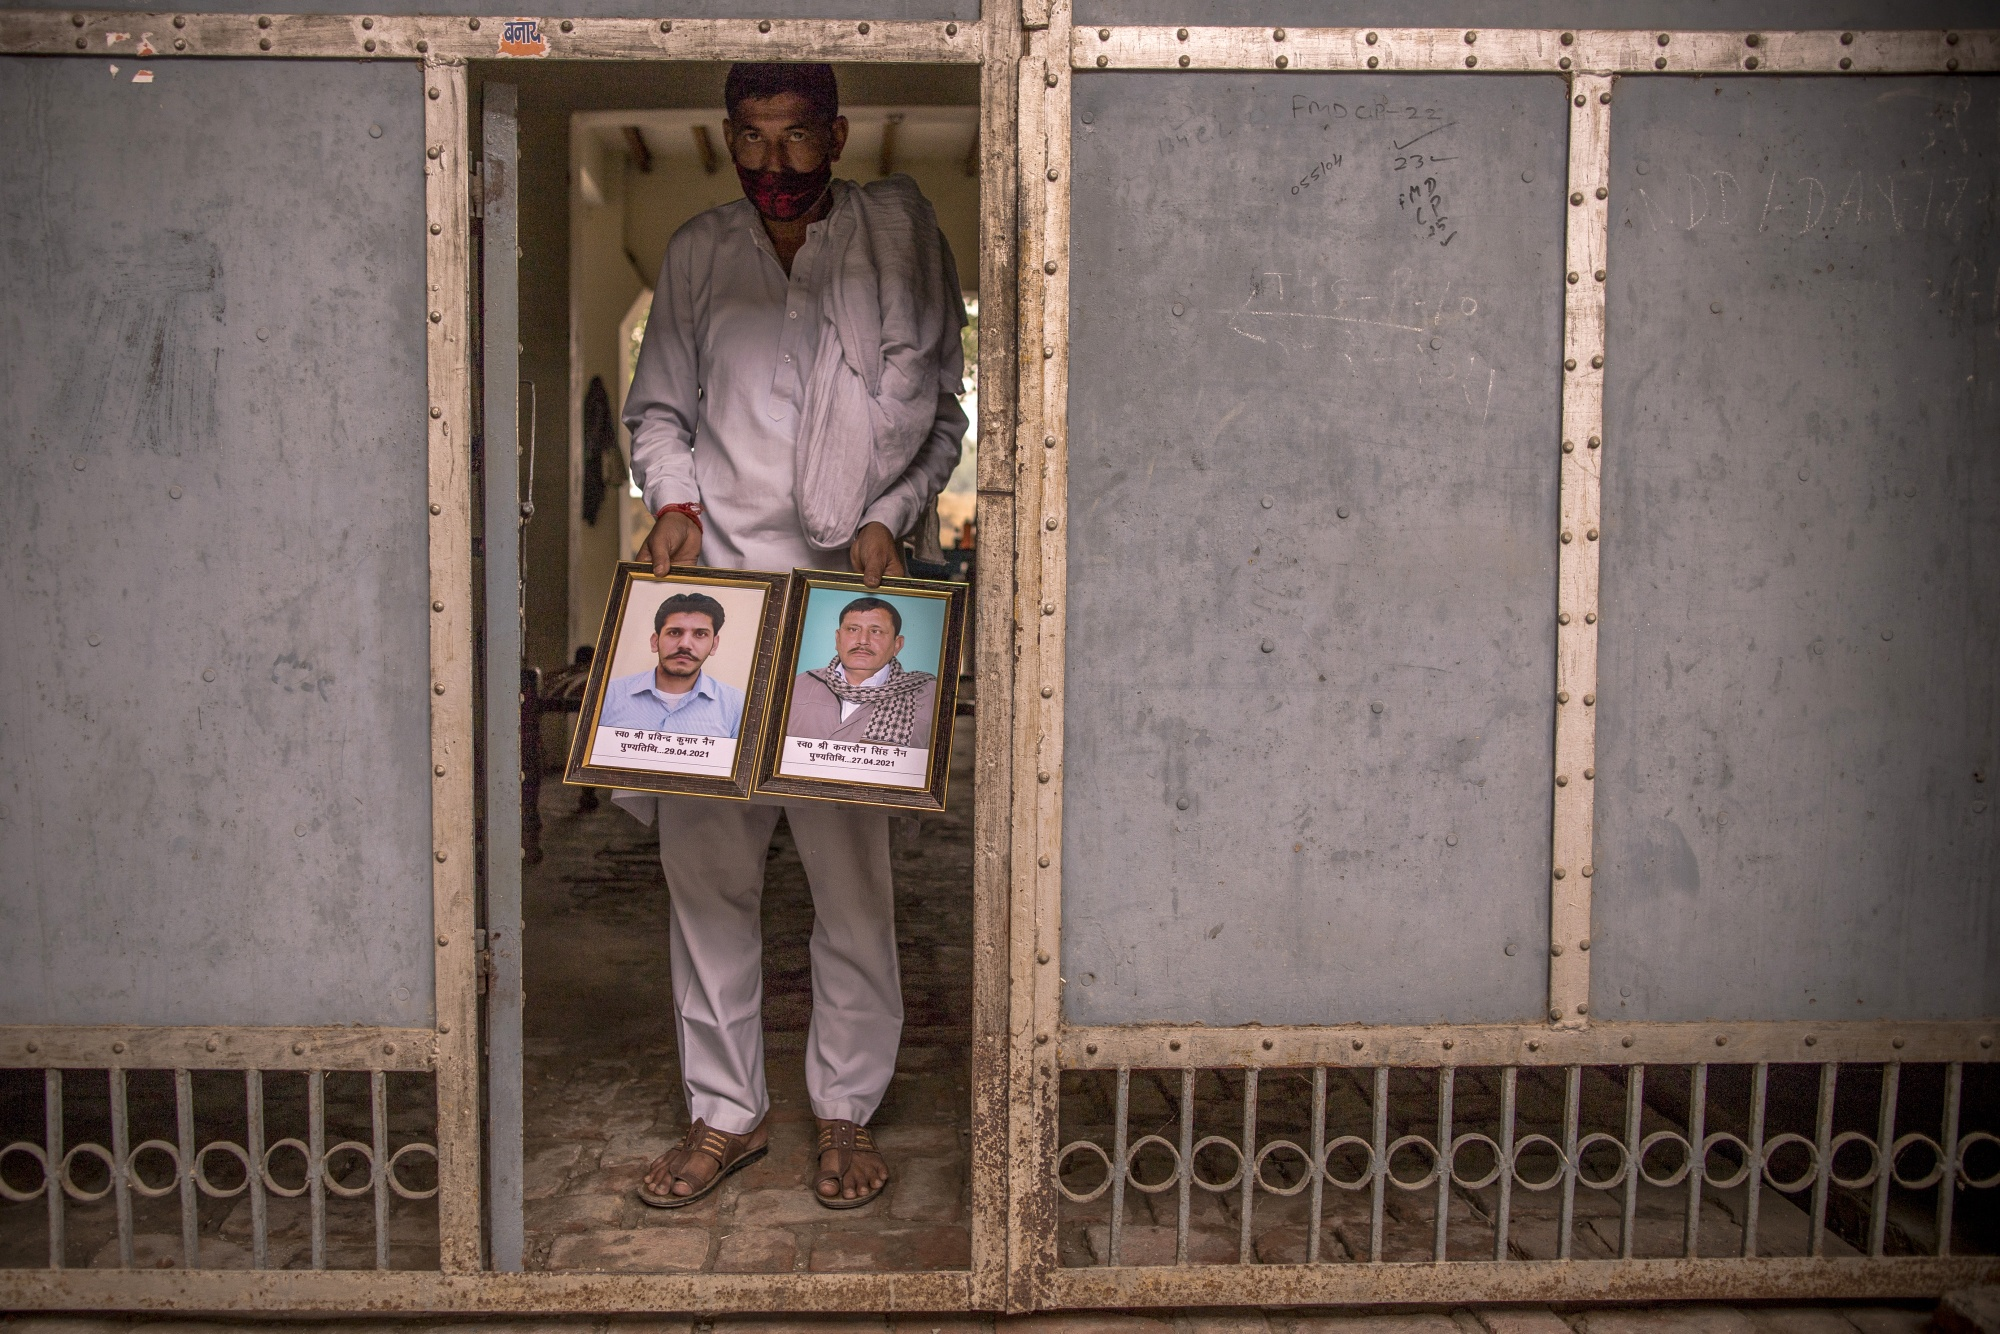 Village Pradhan / Head brings out the portrait of Covid fatalities Kuwarsen Singh (R) and his son Pravinder Kumar. Kuwarsen singh was sent to an election duty where he was infected with the Covid virus. Picture taken at his house in the village Bassi, in Baghpath, Uttar Pradesh, India